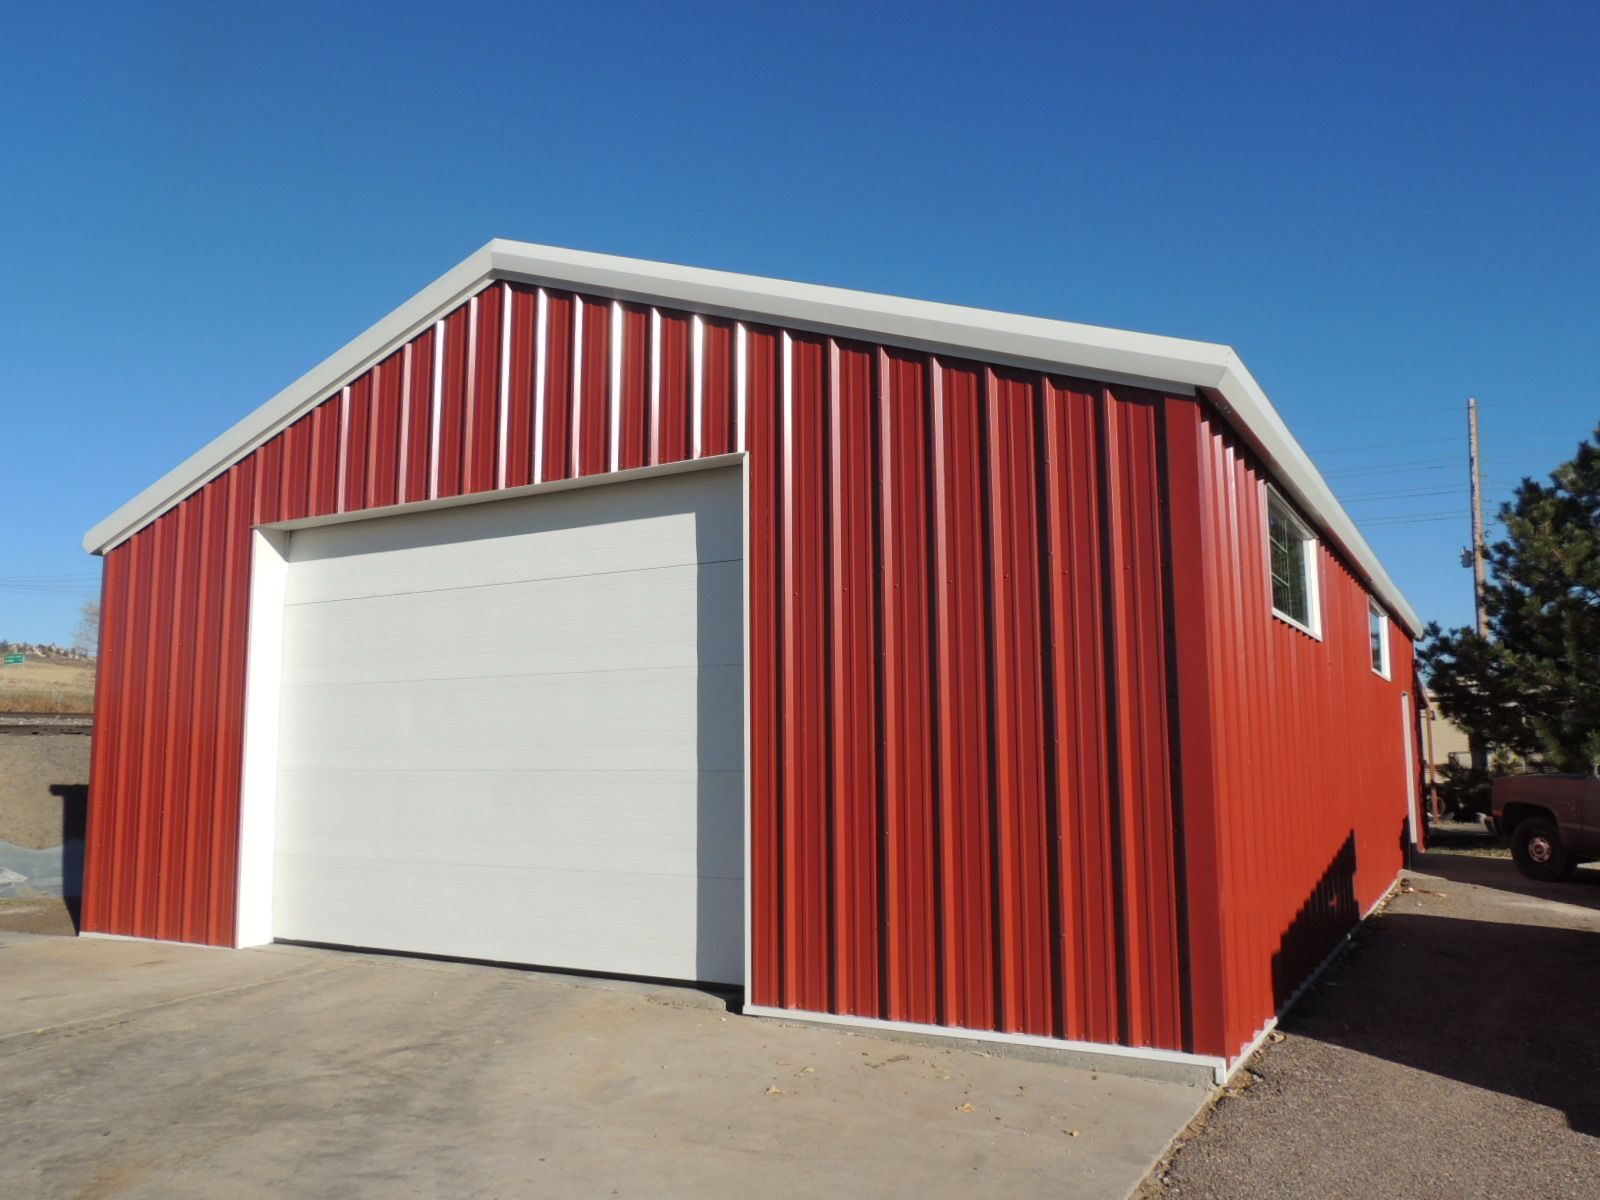 Garage Buildings Repair Garage Building Kits Metal Building Outlet Offers Top Quality